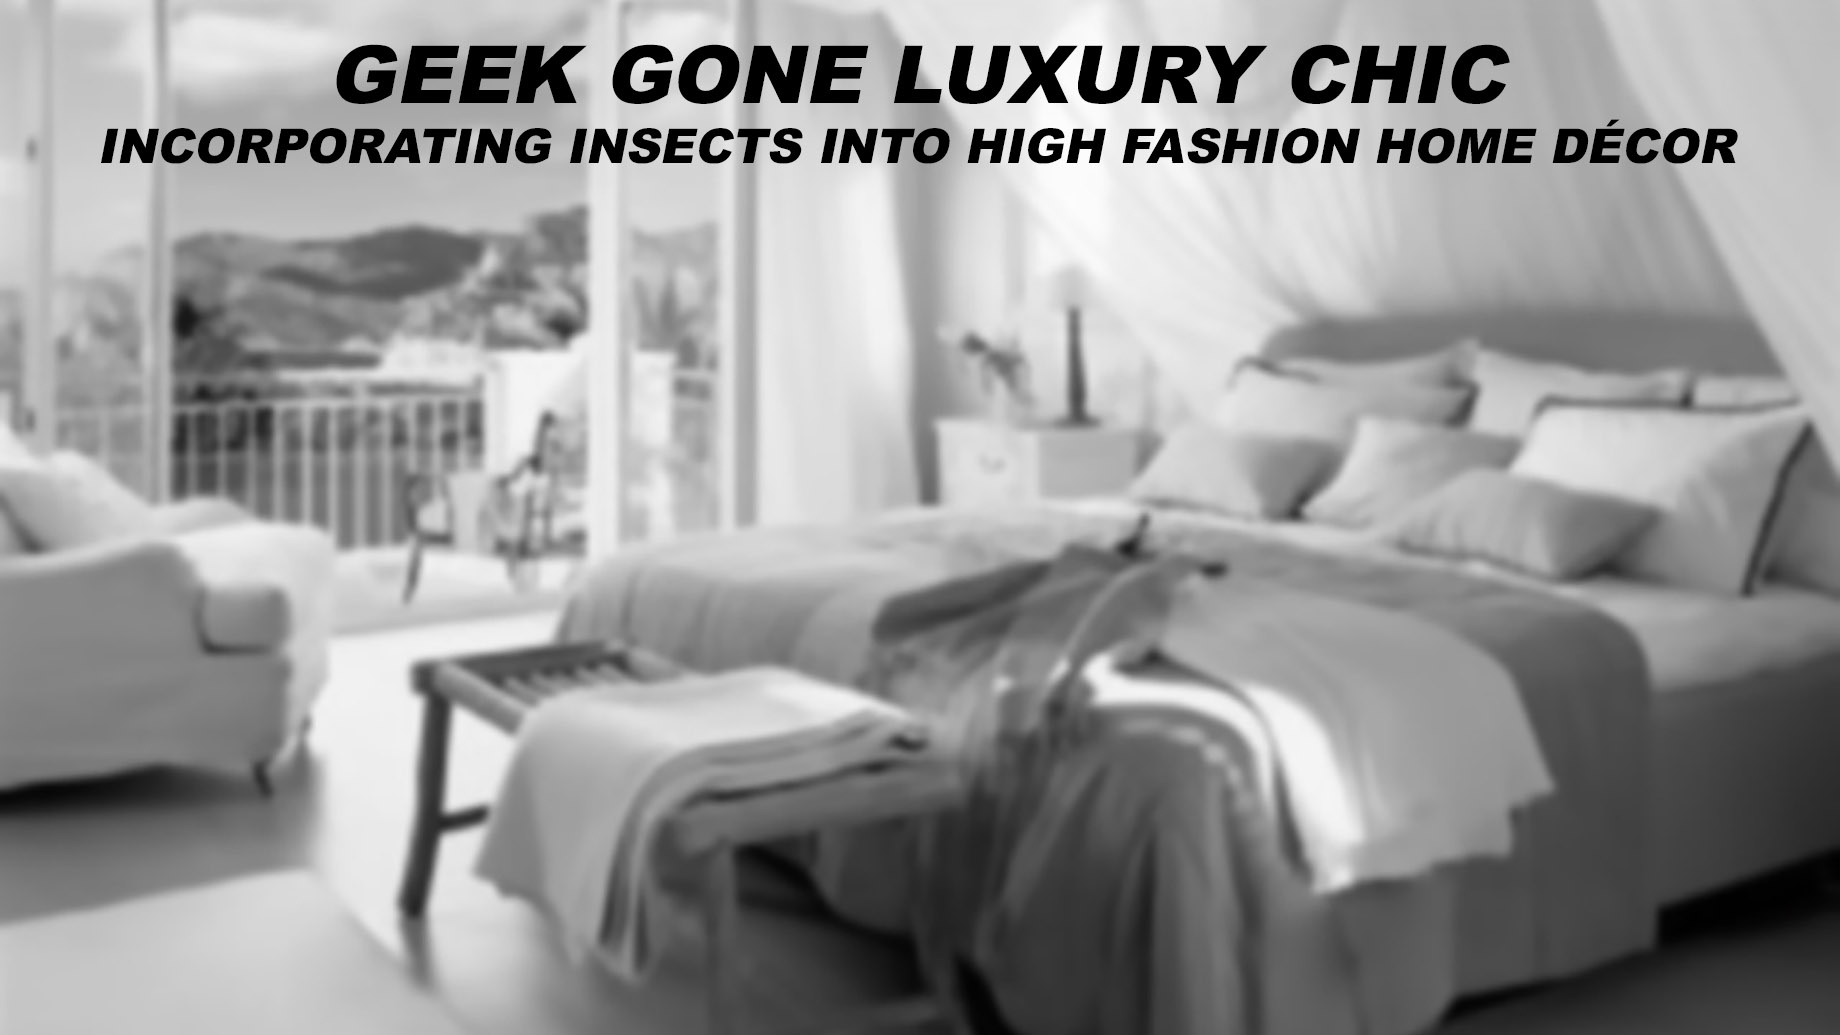 Geek Gone Luxury Chic – Incorporating Insects Into High Fashion Home Décor